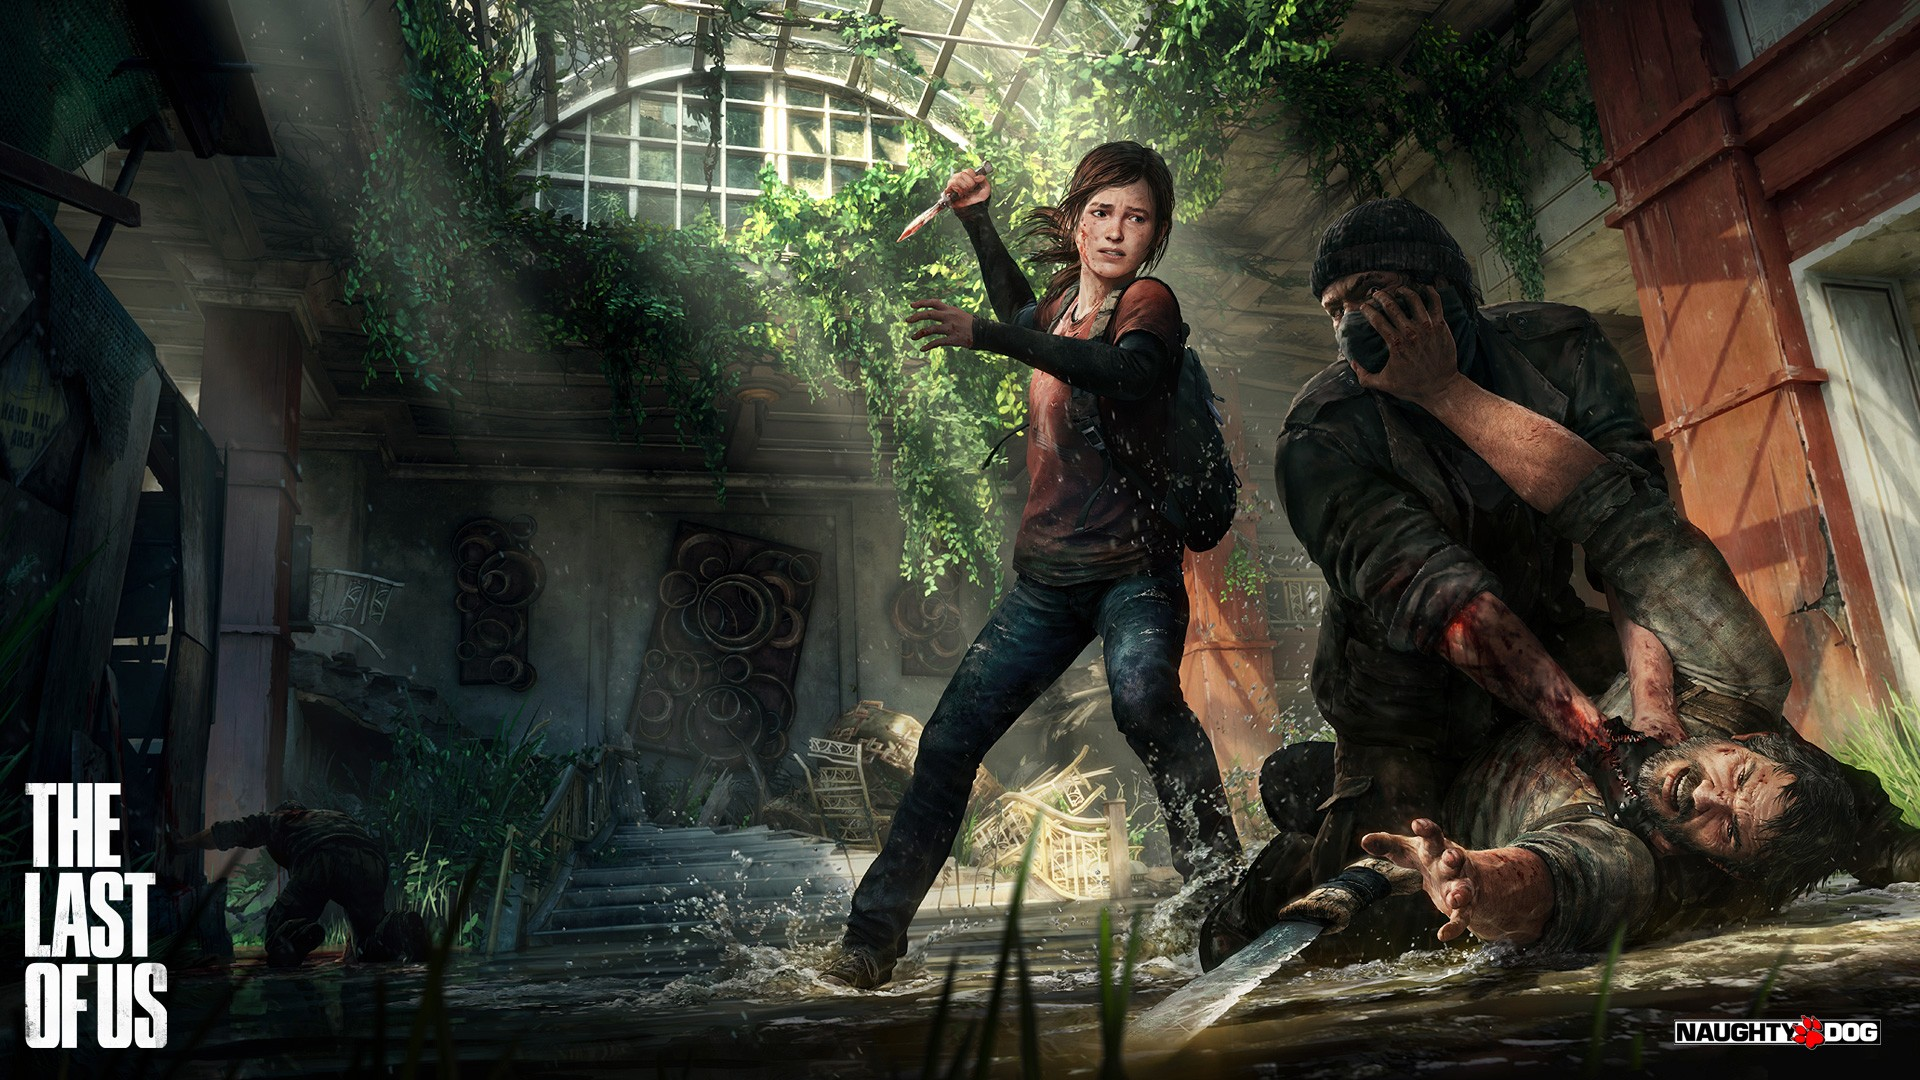 The Last of Us Part 2 Release Date and Multiplayer